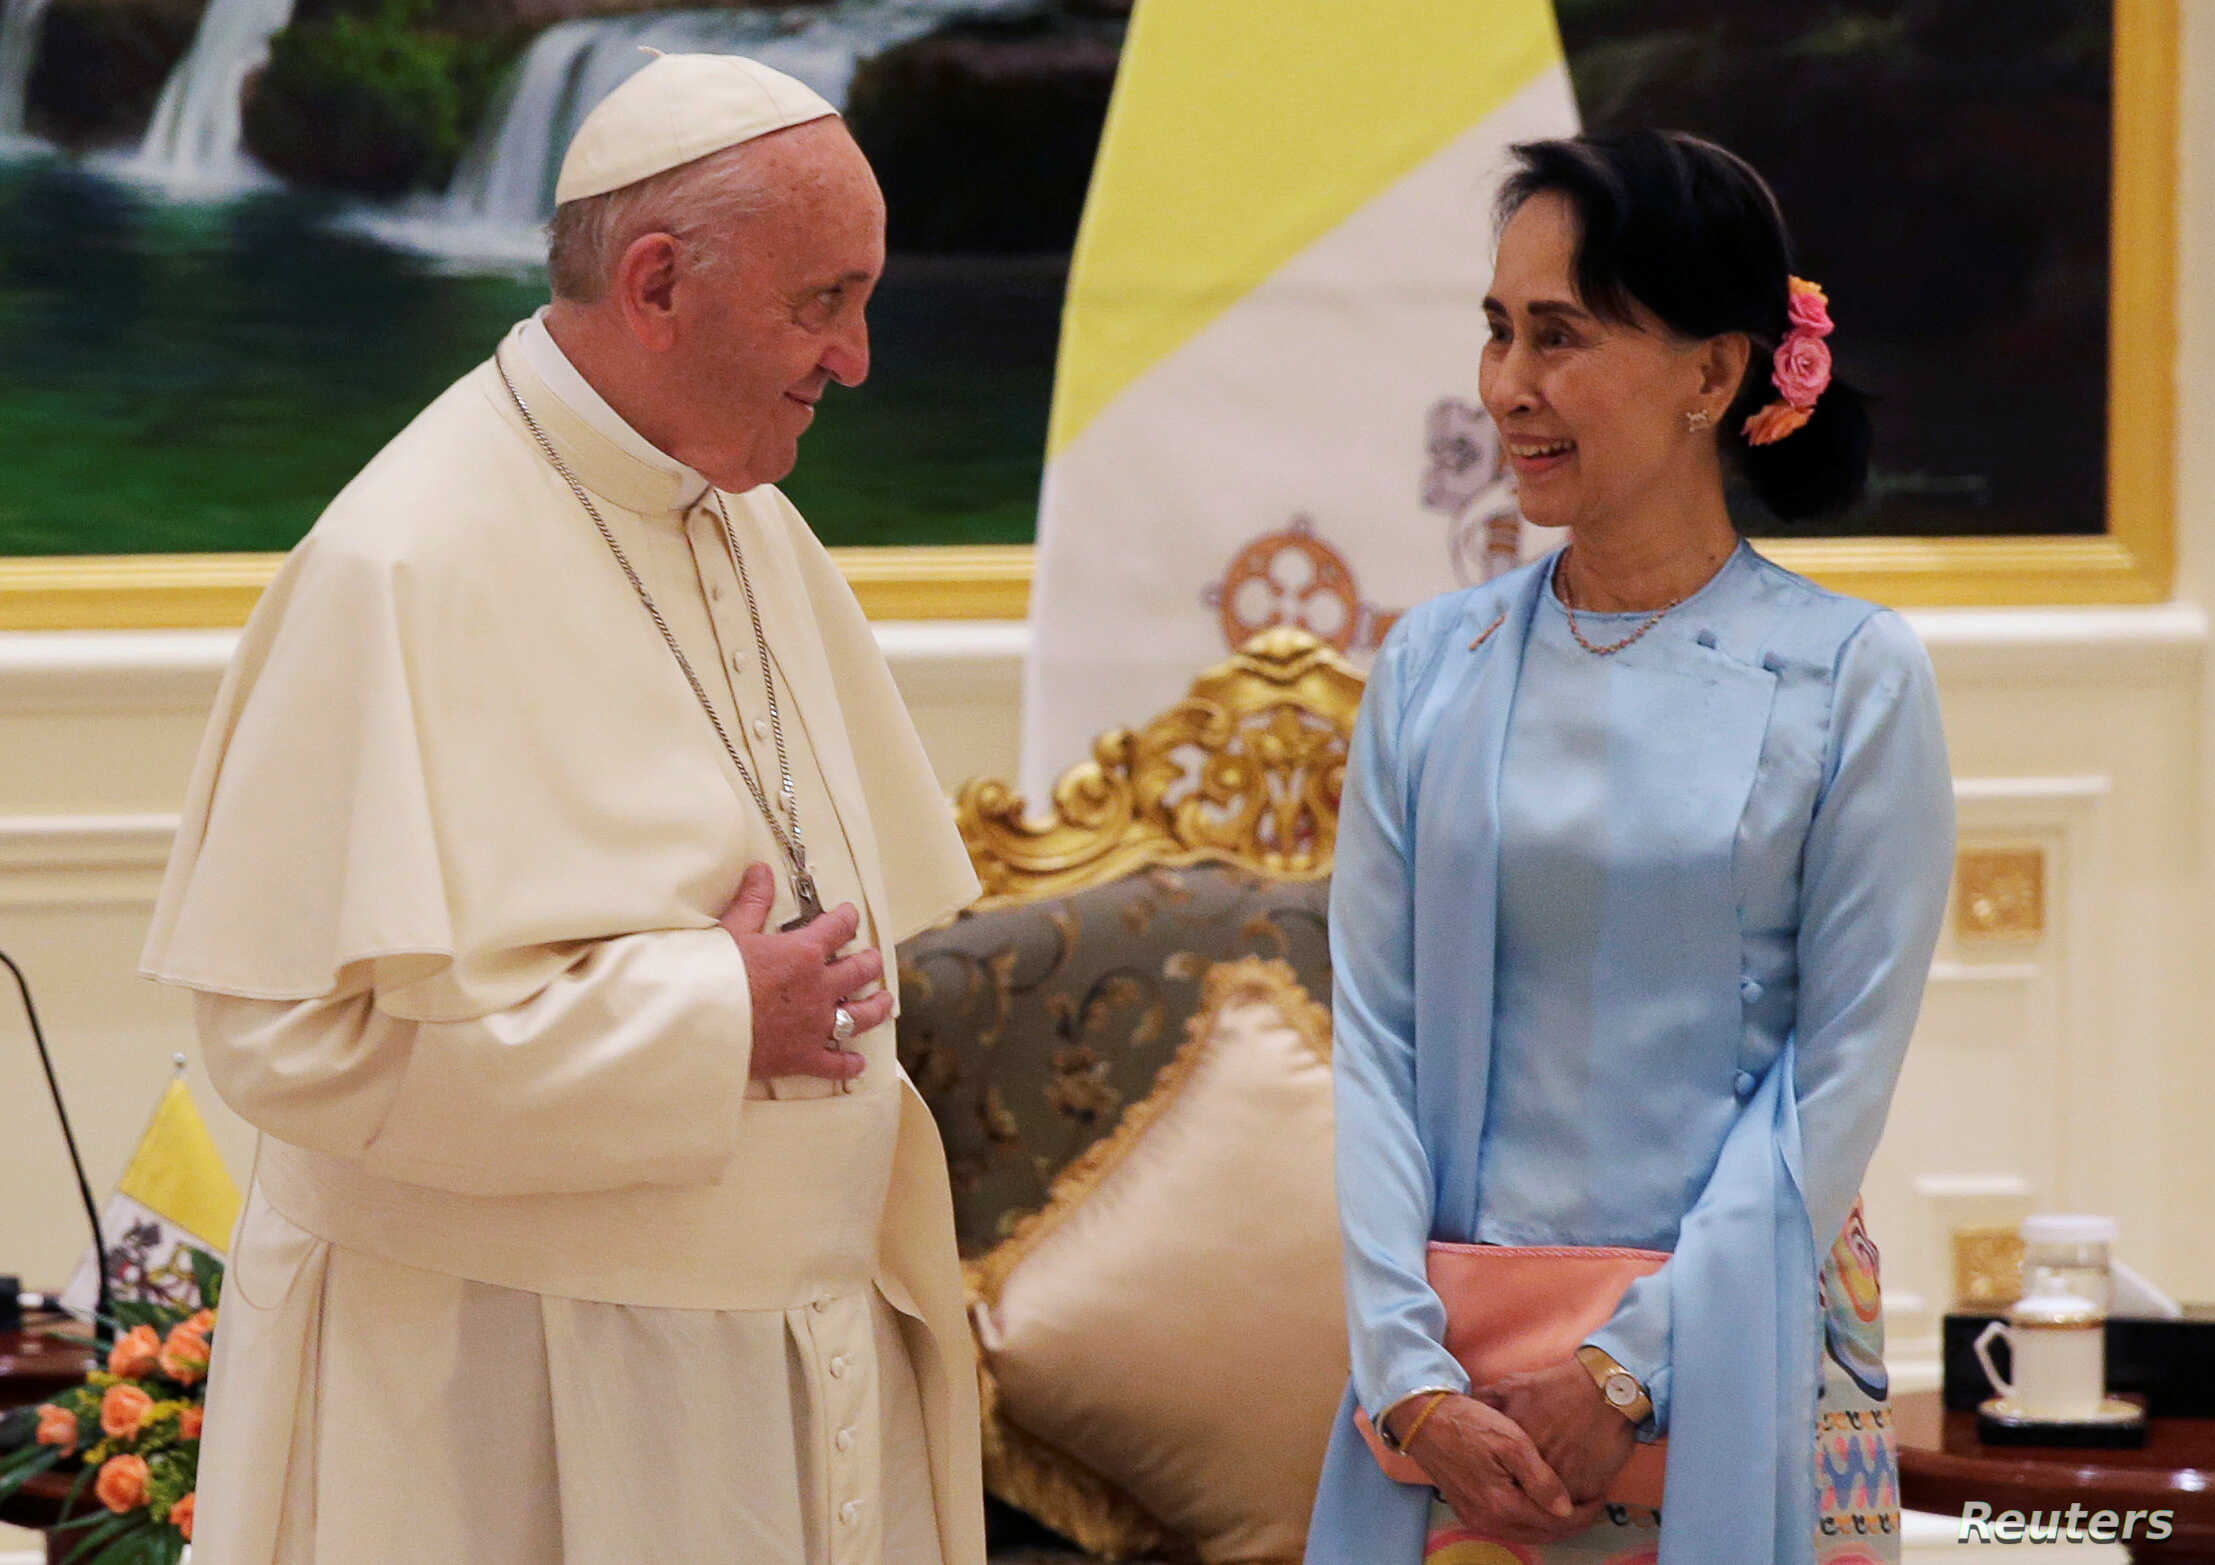 Pope Francis meets Myanmar's State Counsellor Aung San Suu Kyi in Naypyitaw, Myanmar November 28, 2017.   REUTERS/Max Rossi - RC1C8A19CBA0